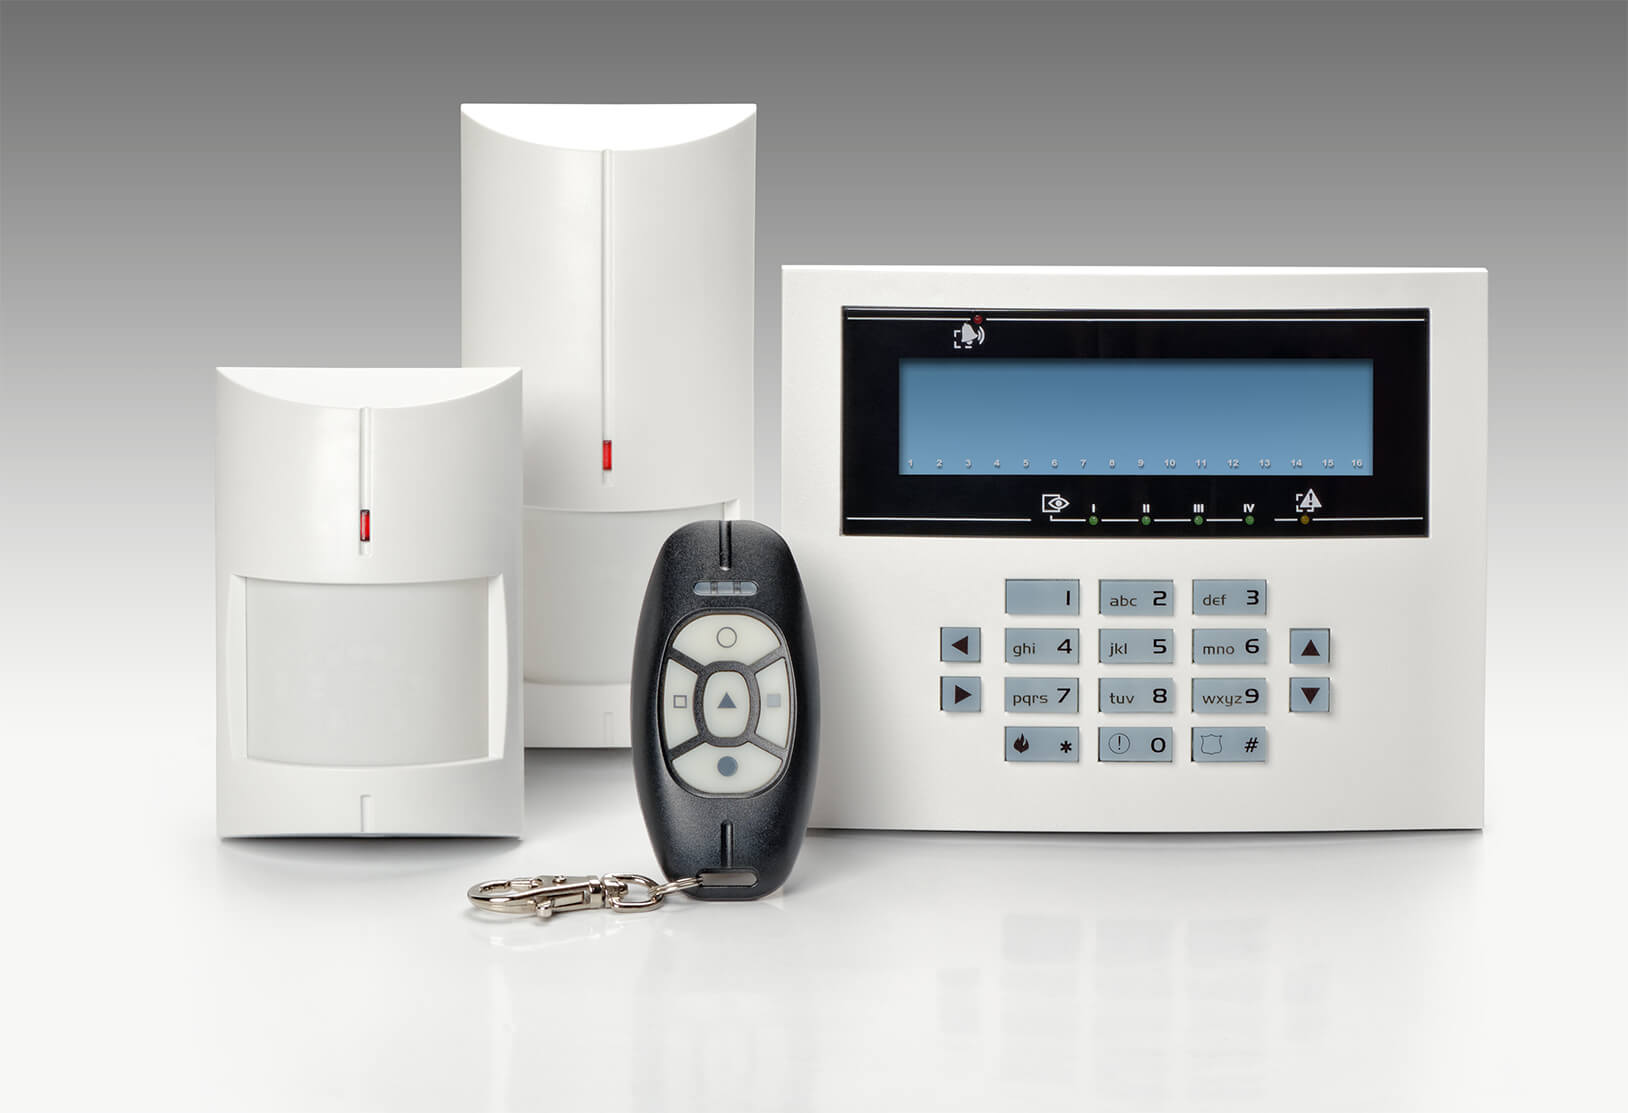 Business & Residential NSI / NACOSS Approved Burglar Alarms In Alexandra Palace/Park N22 - Local Alexandra Palace/Park N22 security company.Call 02078872244 - Dedicated to Safety & Security. Companies, shops and homes ..